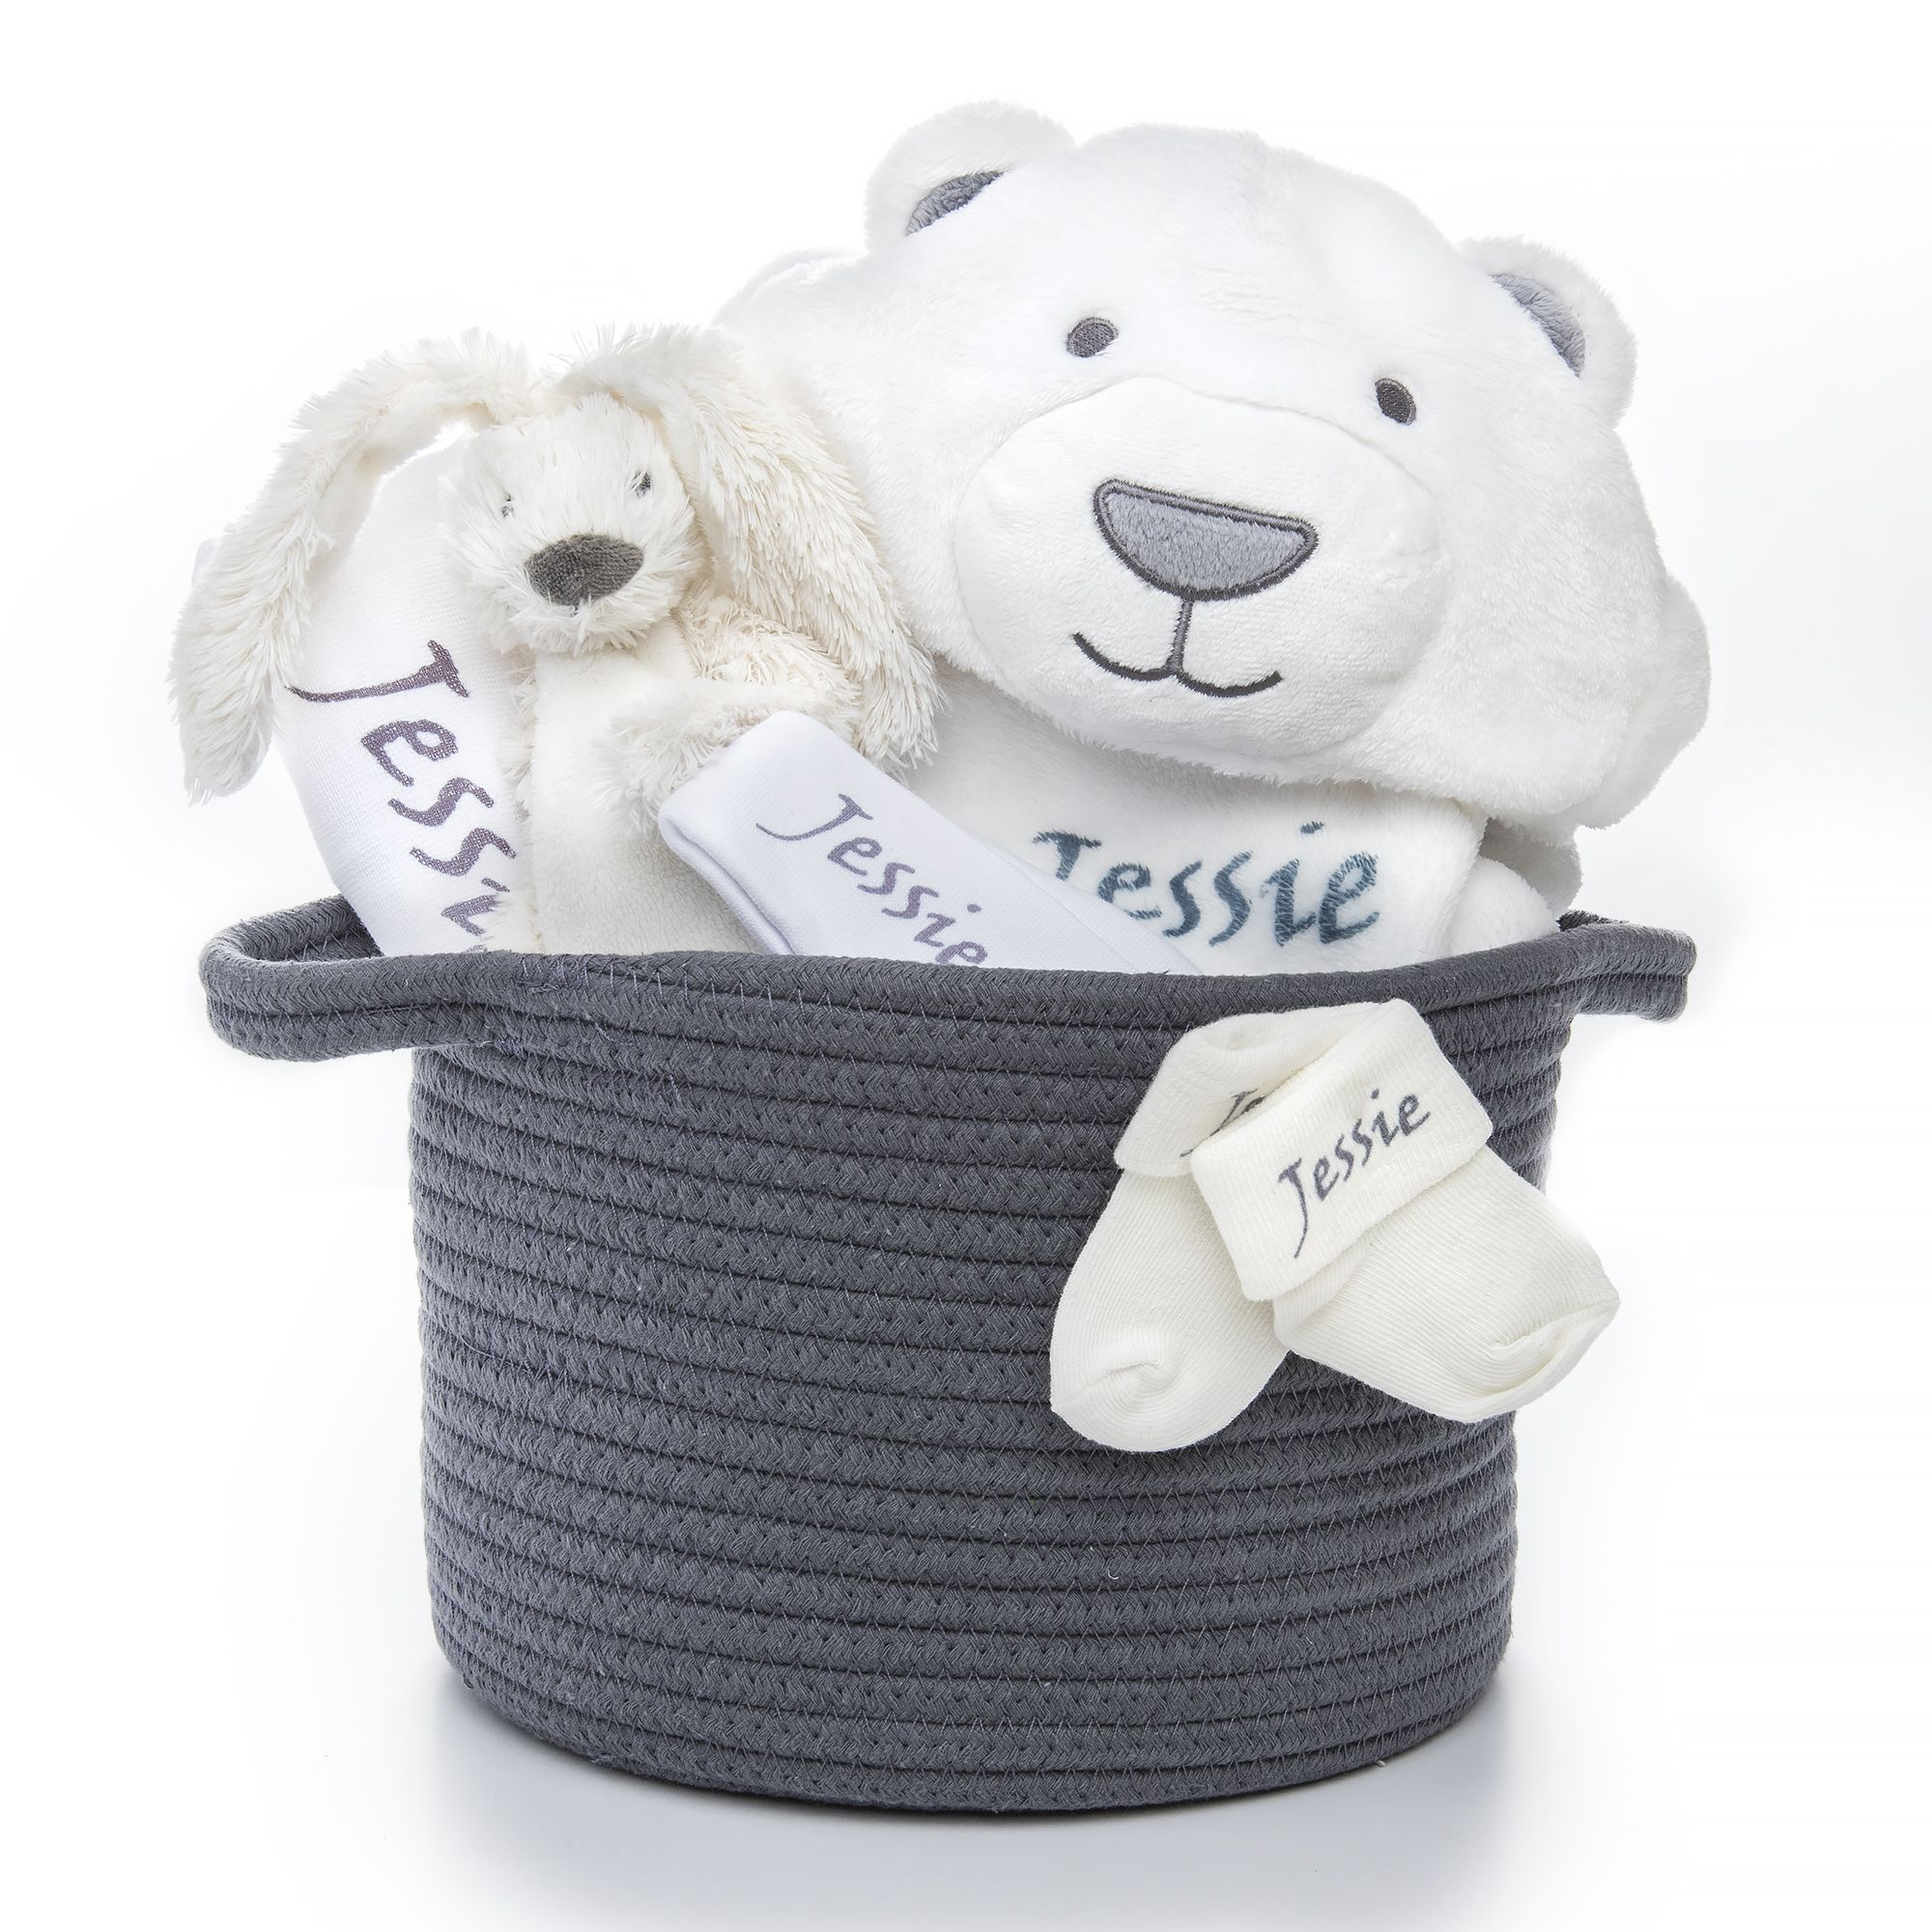 Personalised baby gift hampers diy choose each item for your gift personalised baby gift hampers diy choose each item for your gift hamper and then customise negle Choice Image